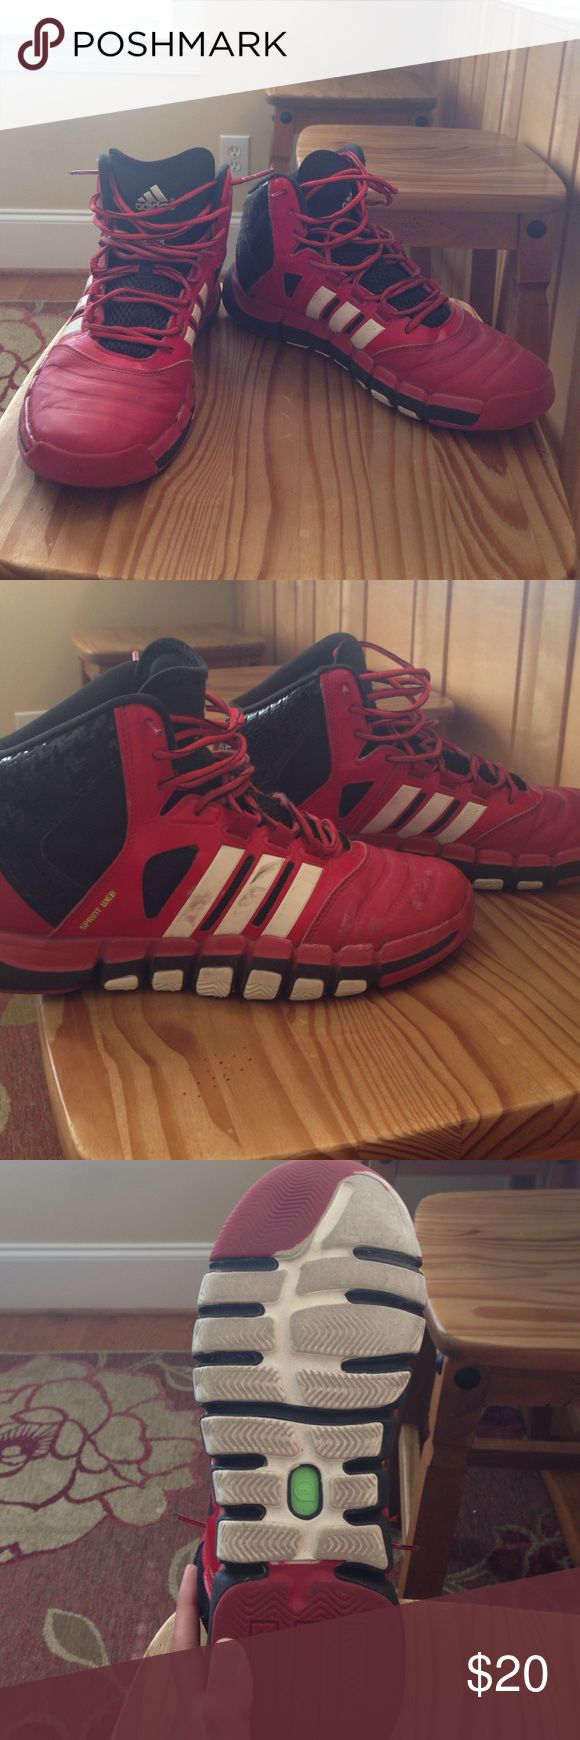 Men's Adidas basketball shoes Red and black Adidas basketball shoes size 9.5. Style is techfit. Some scuffs on outside of both shoes as seen in pictures. Adidas Shoes Athletic Shoes